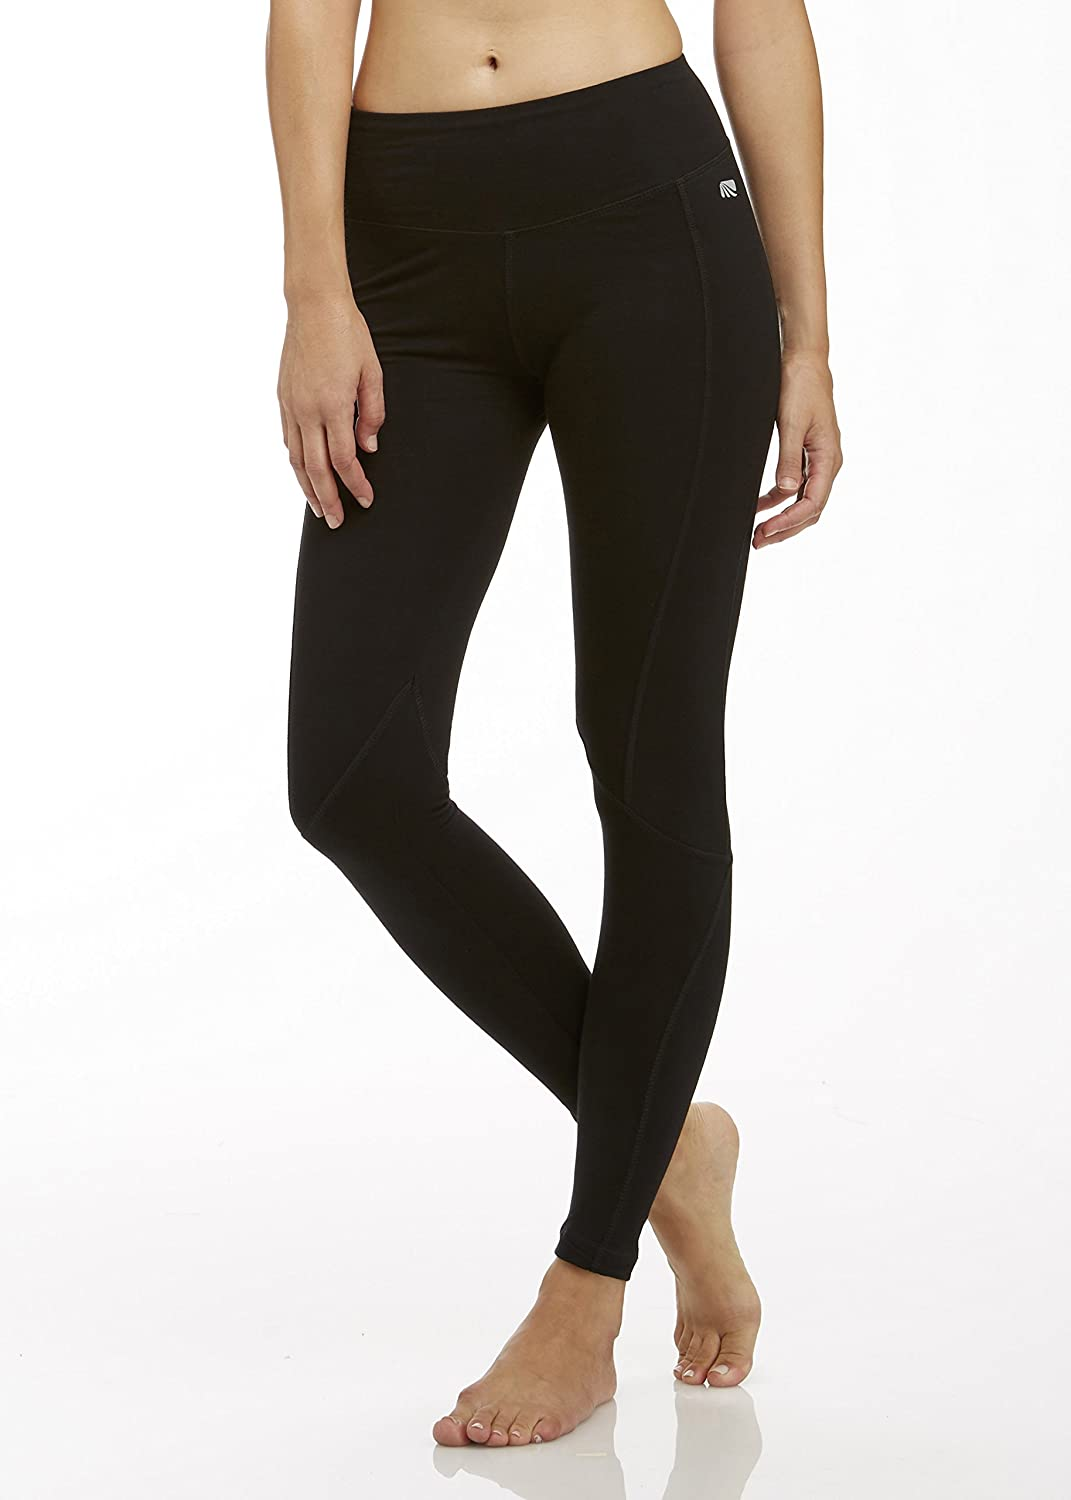 fcd601df4056c1 MOVE FREELY: Tired of fitted leggings restricting your movement? The MARIKA  Women's